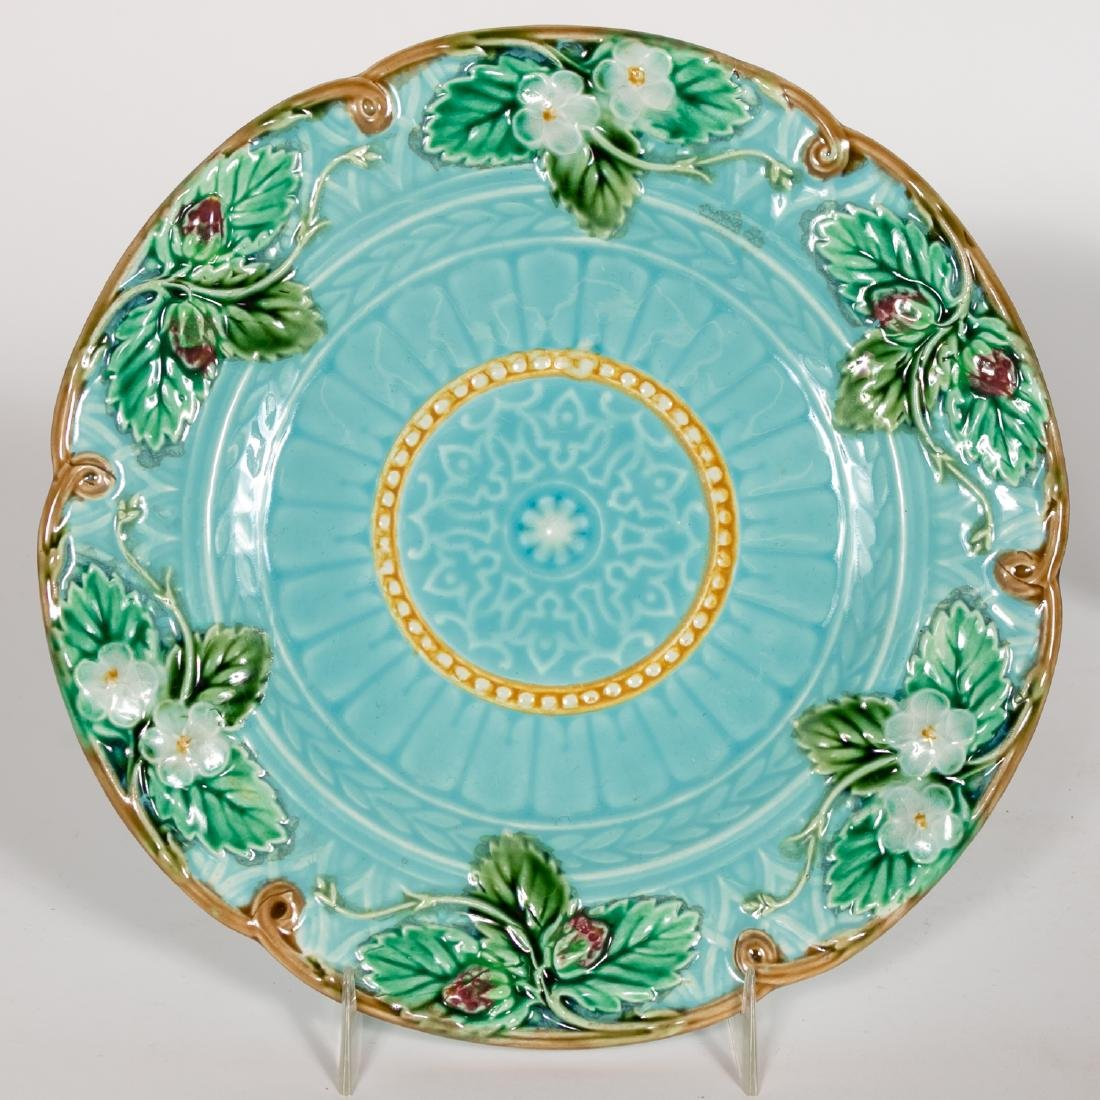 Group, 4 Floral Continental Majolica Plates - 3